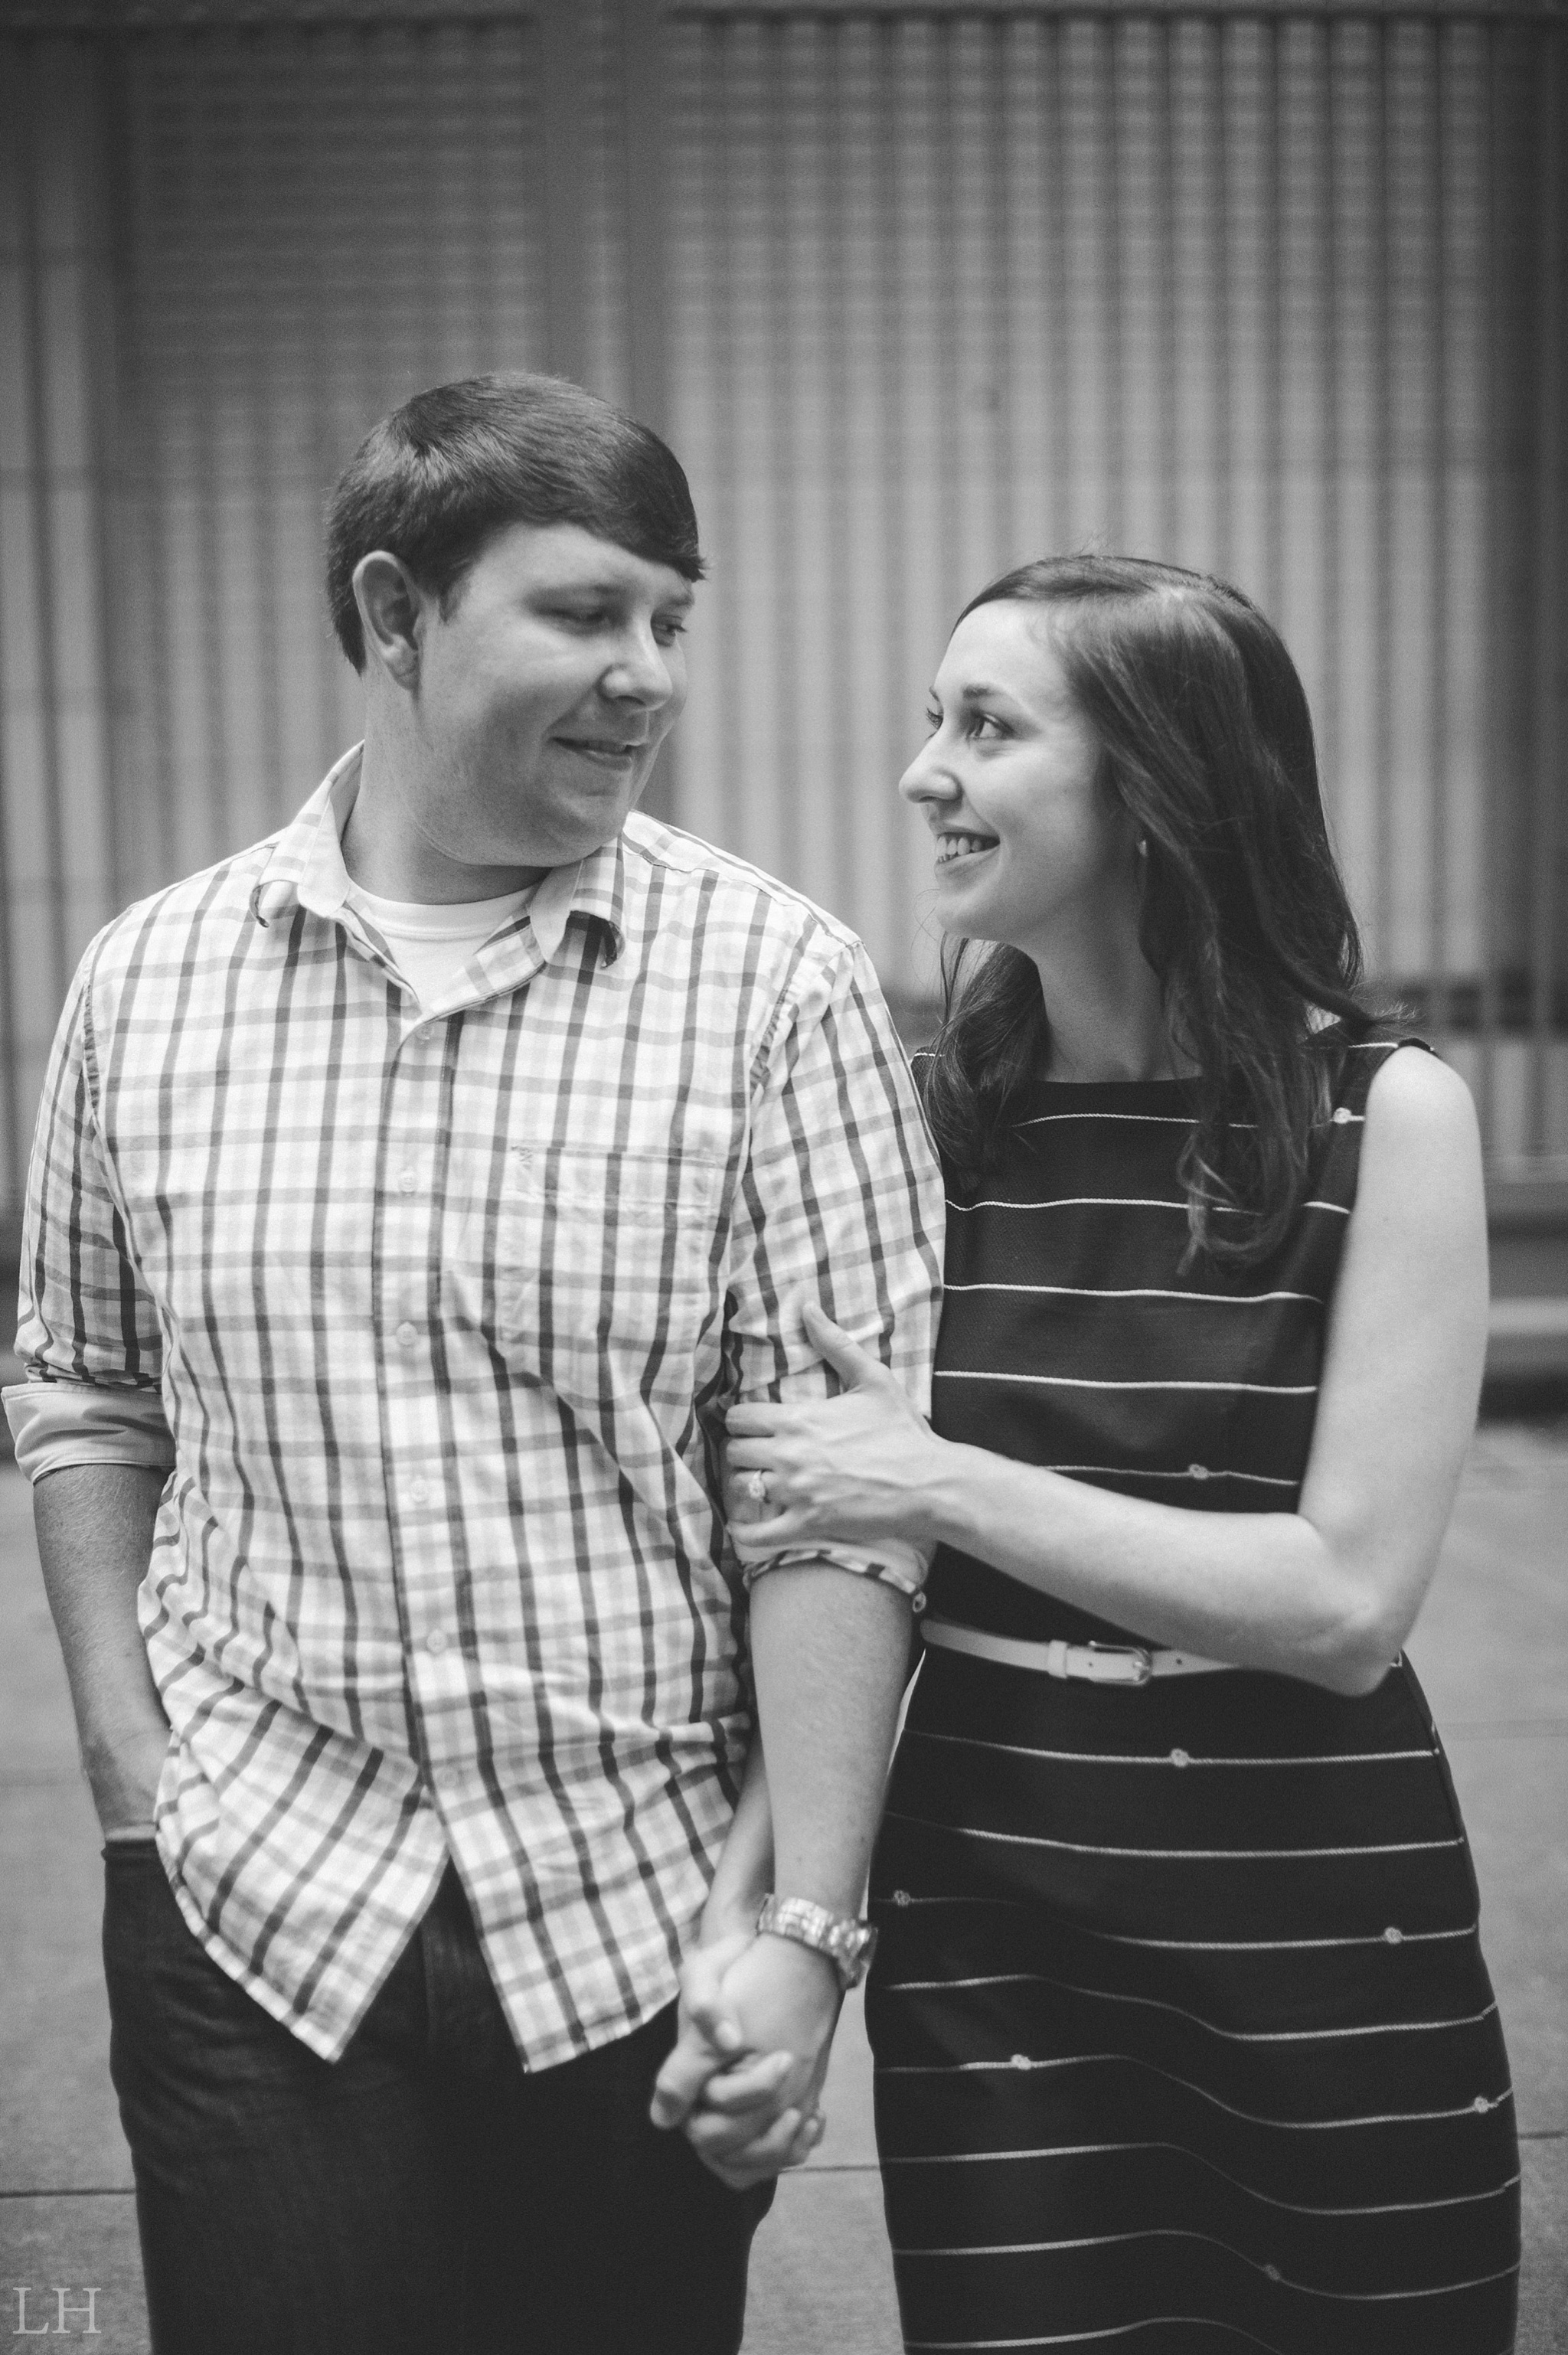 DowntownKnoxvilleEngagementSession109.jpg